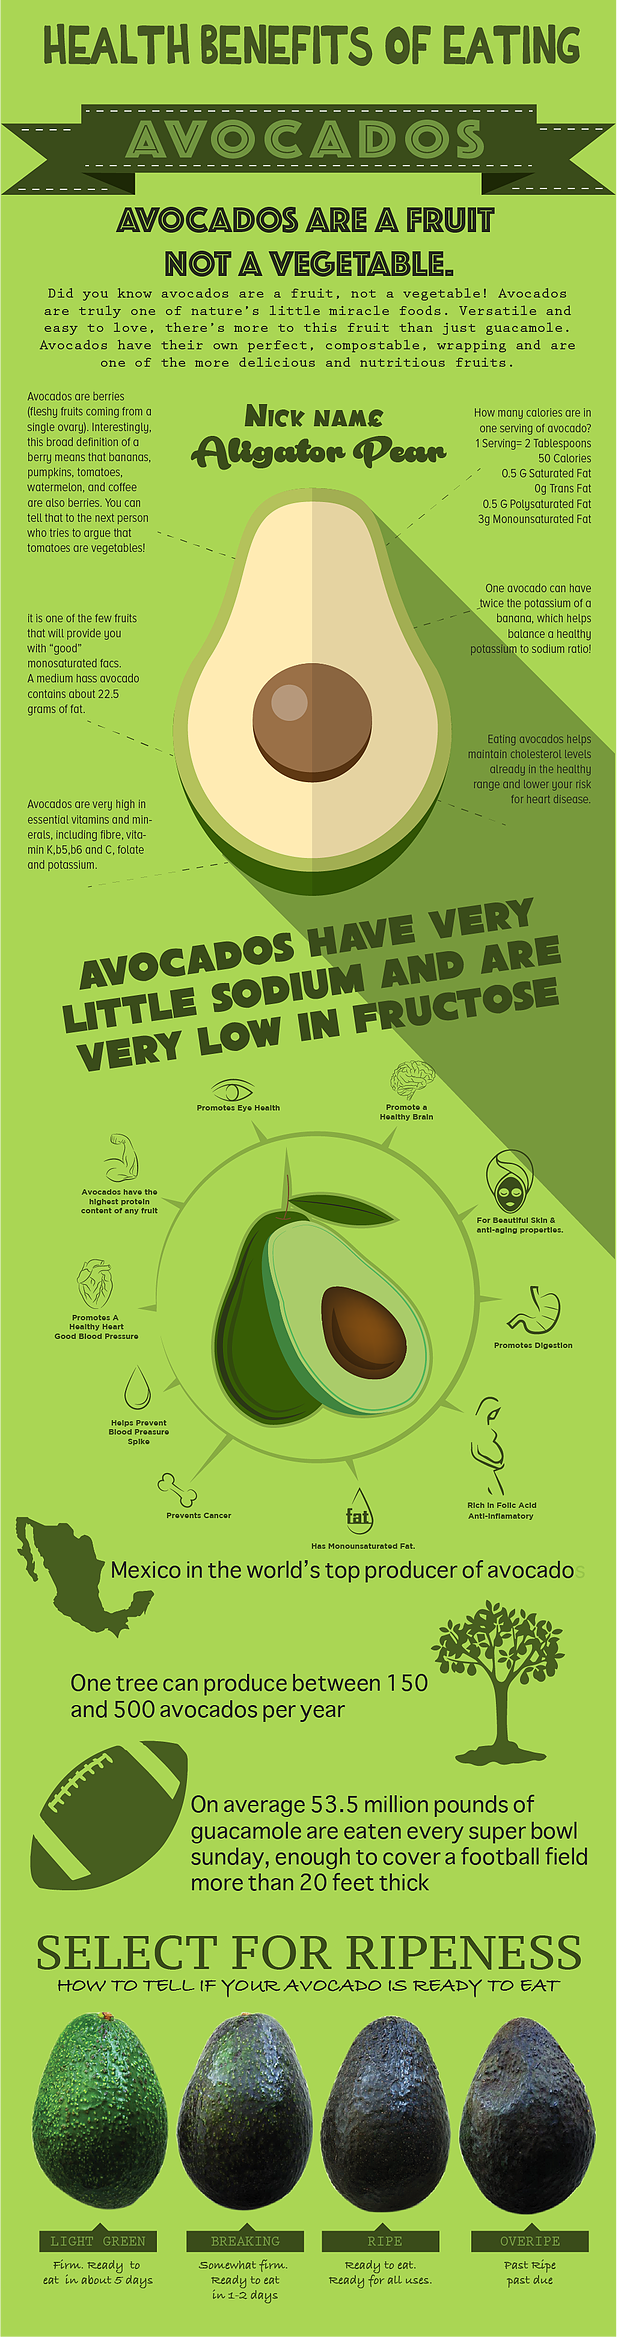 Avocadoes Infographic - Thomas Fresh